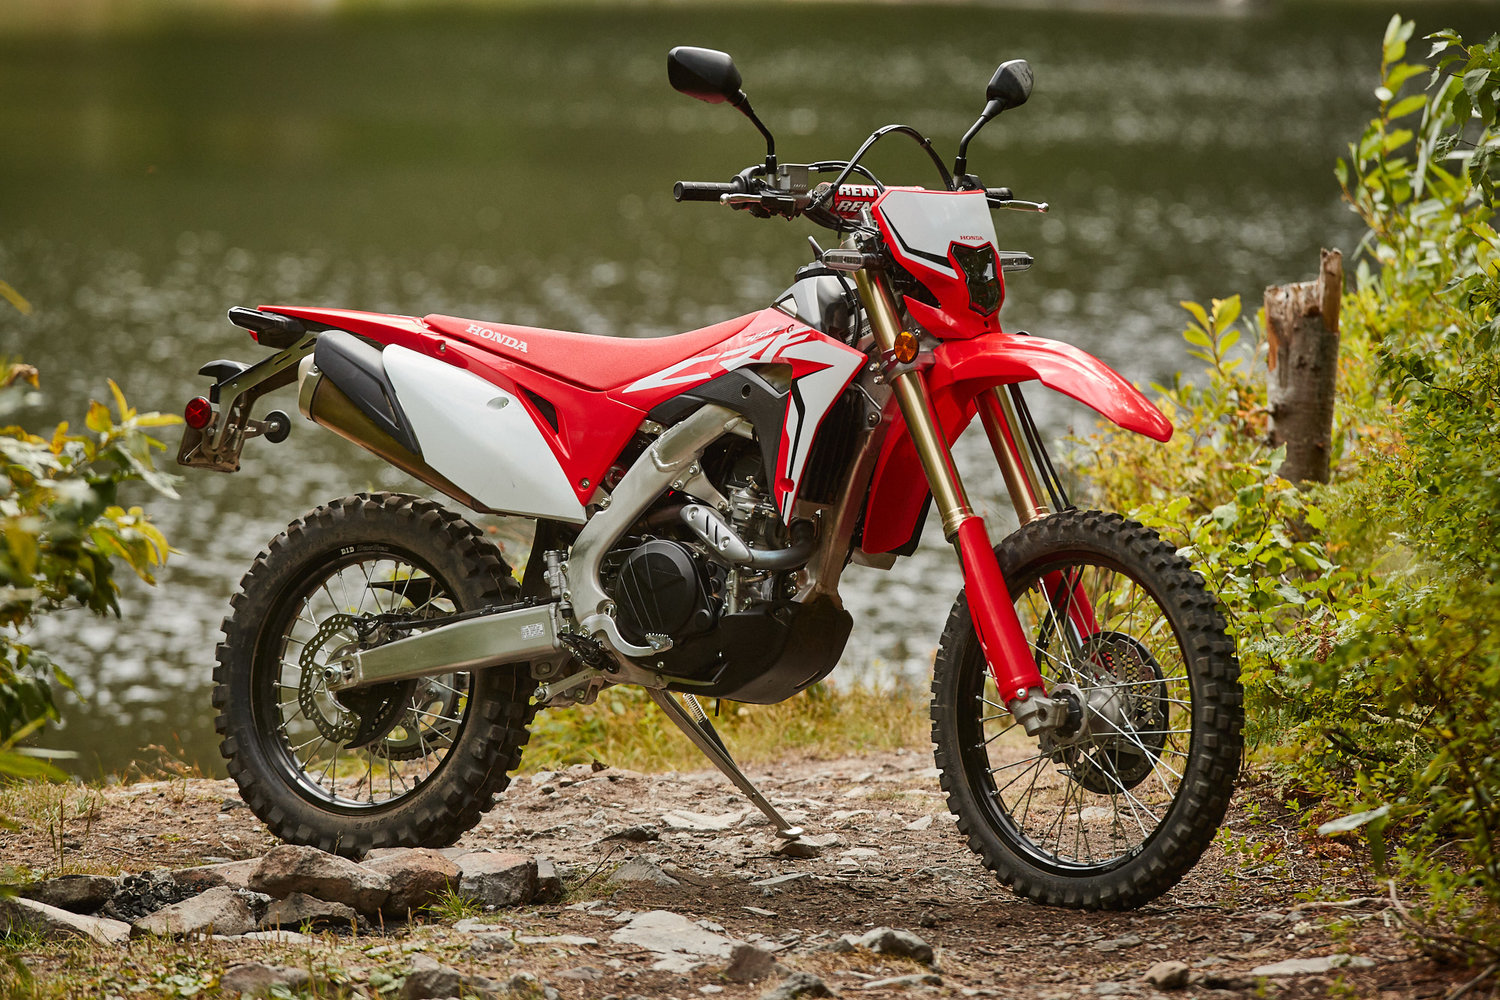 2019 Honda CRF450L First Impression — Keefer Inc  Testing